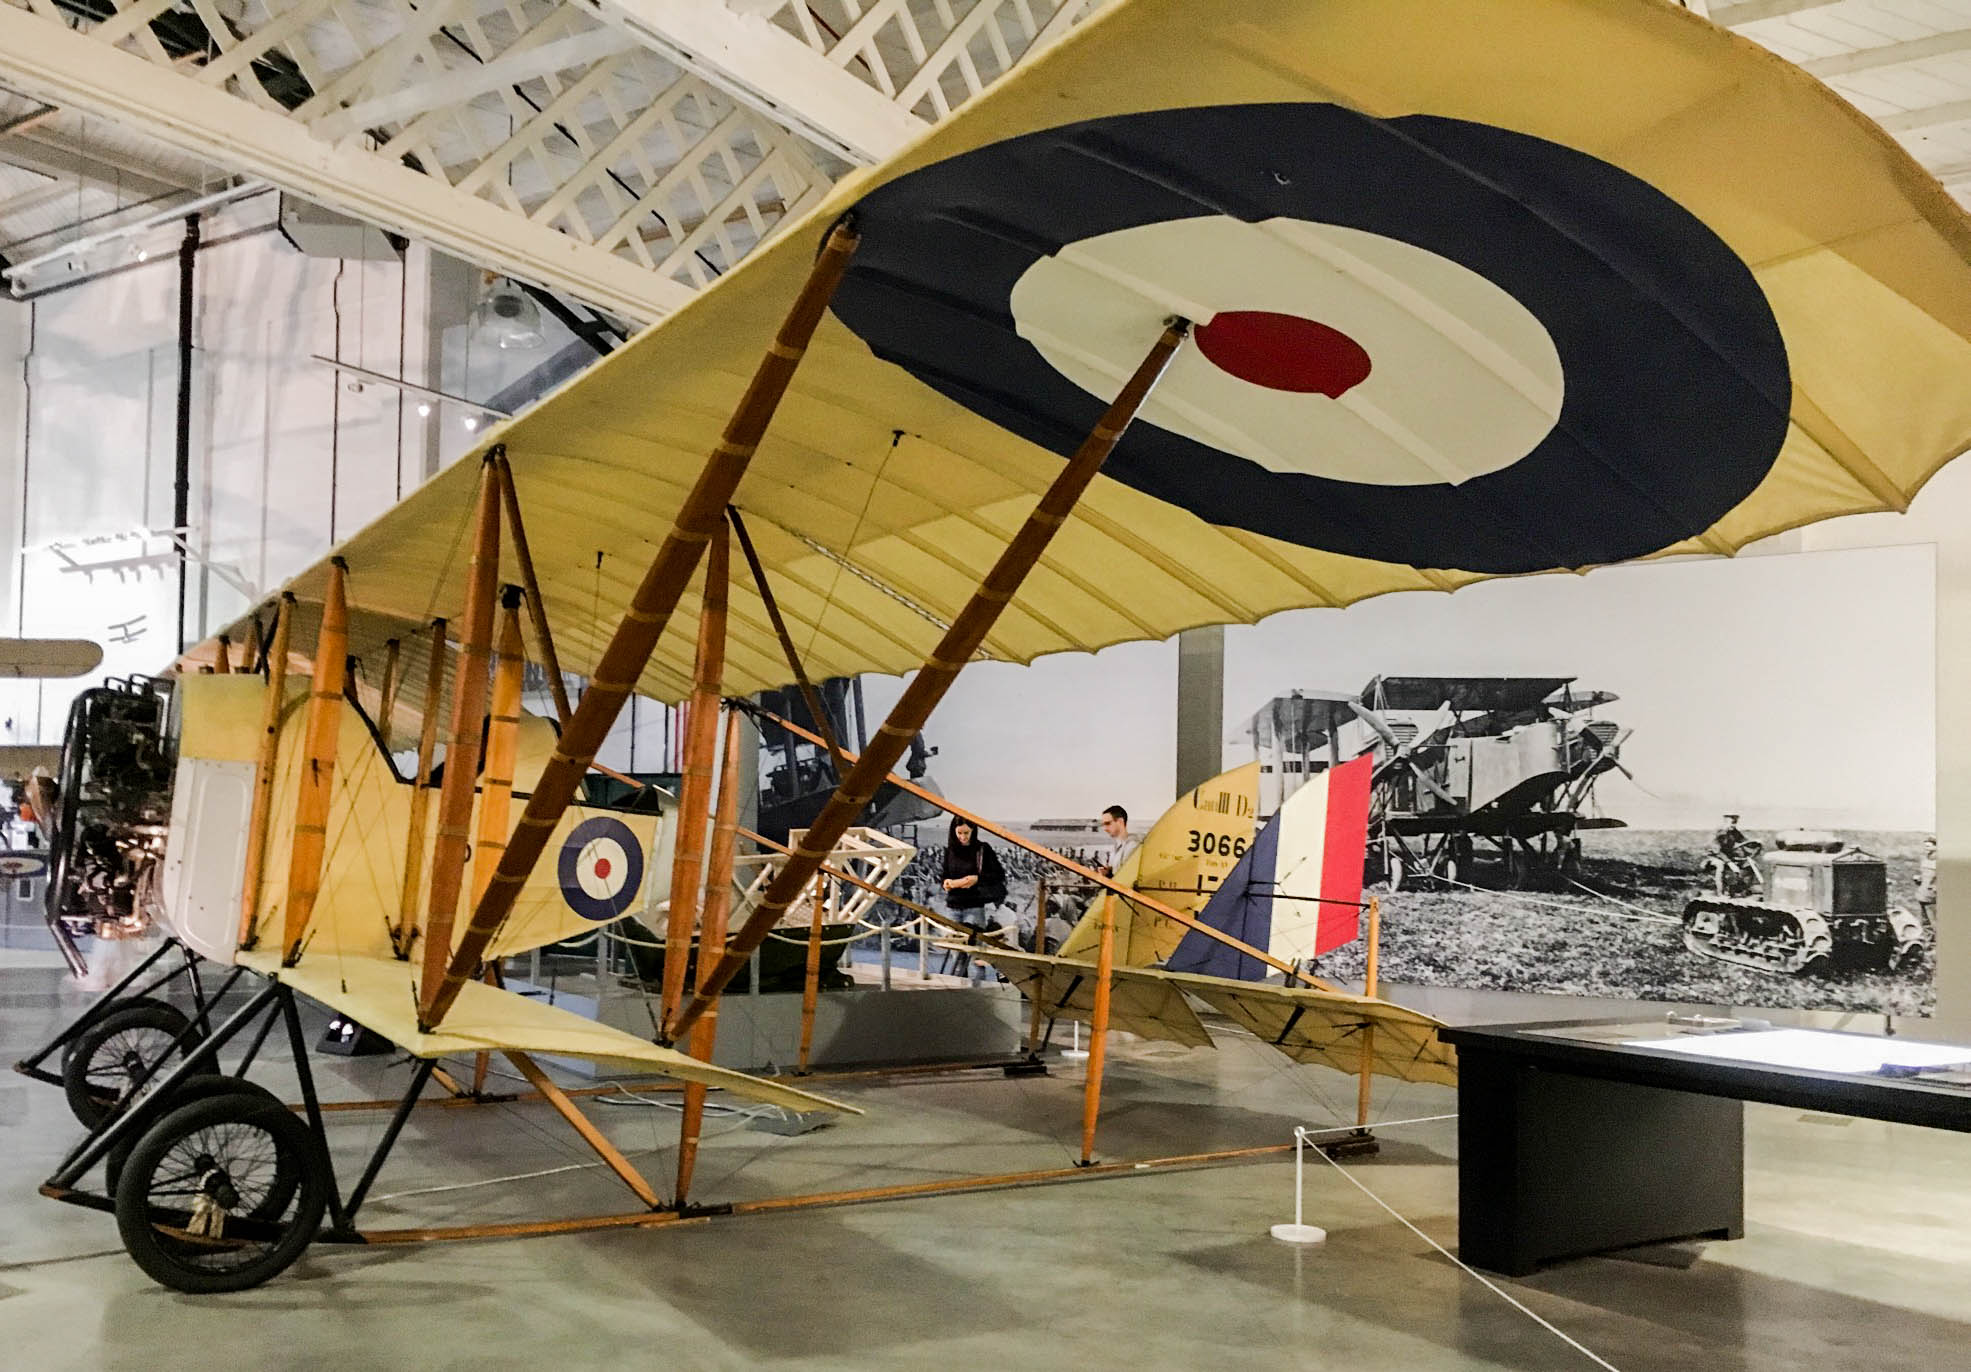 Royal Air Force Museum Londona0528a81c0eb58f